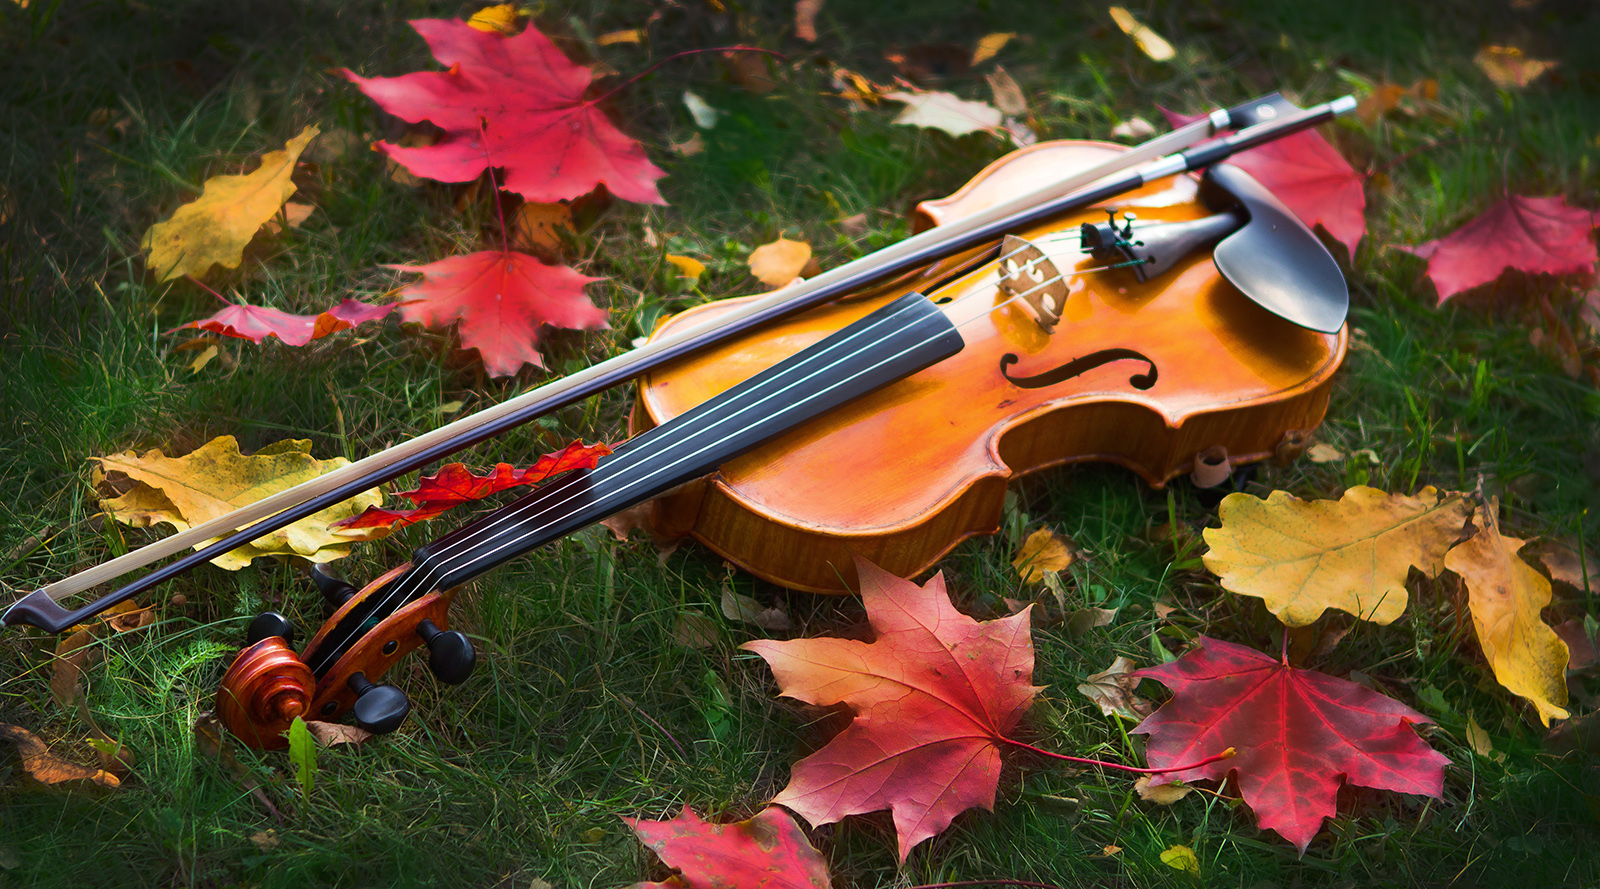 violin in the grass with red maple leaves all around